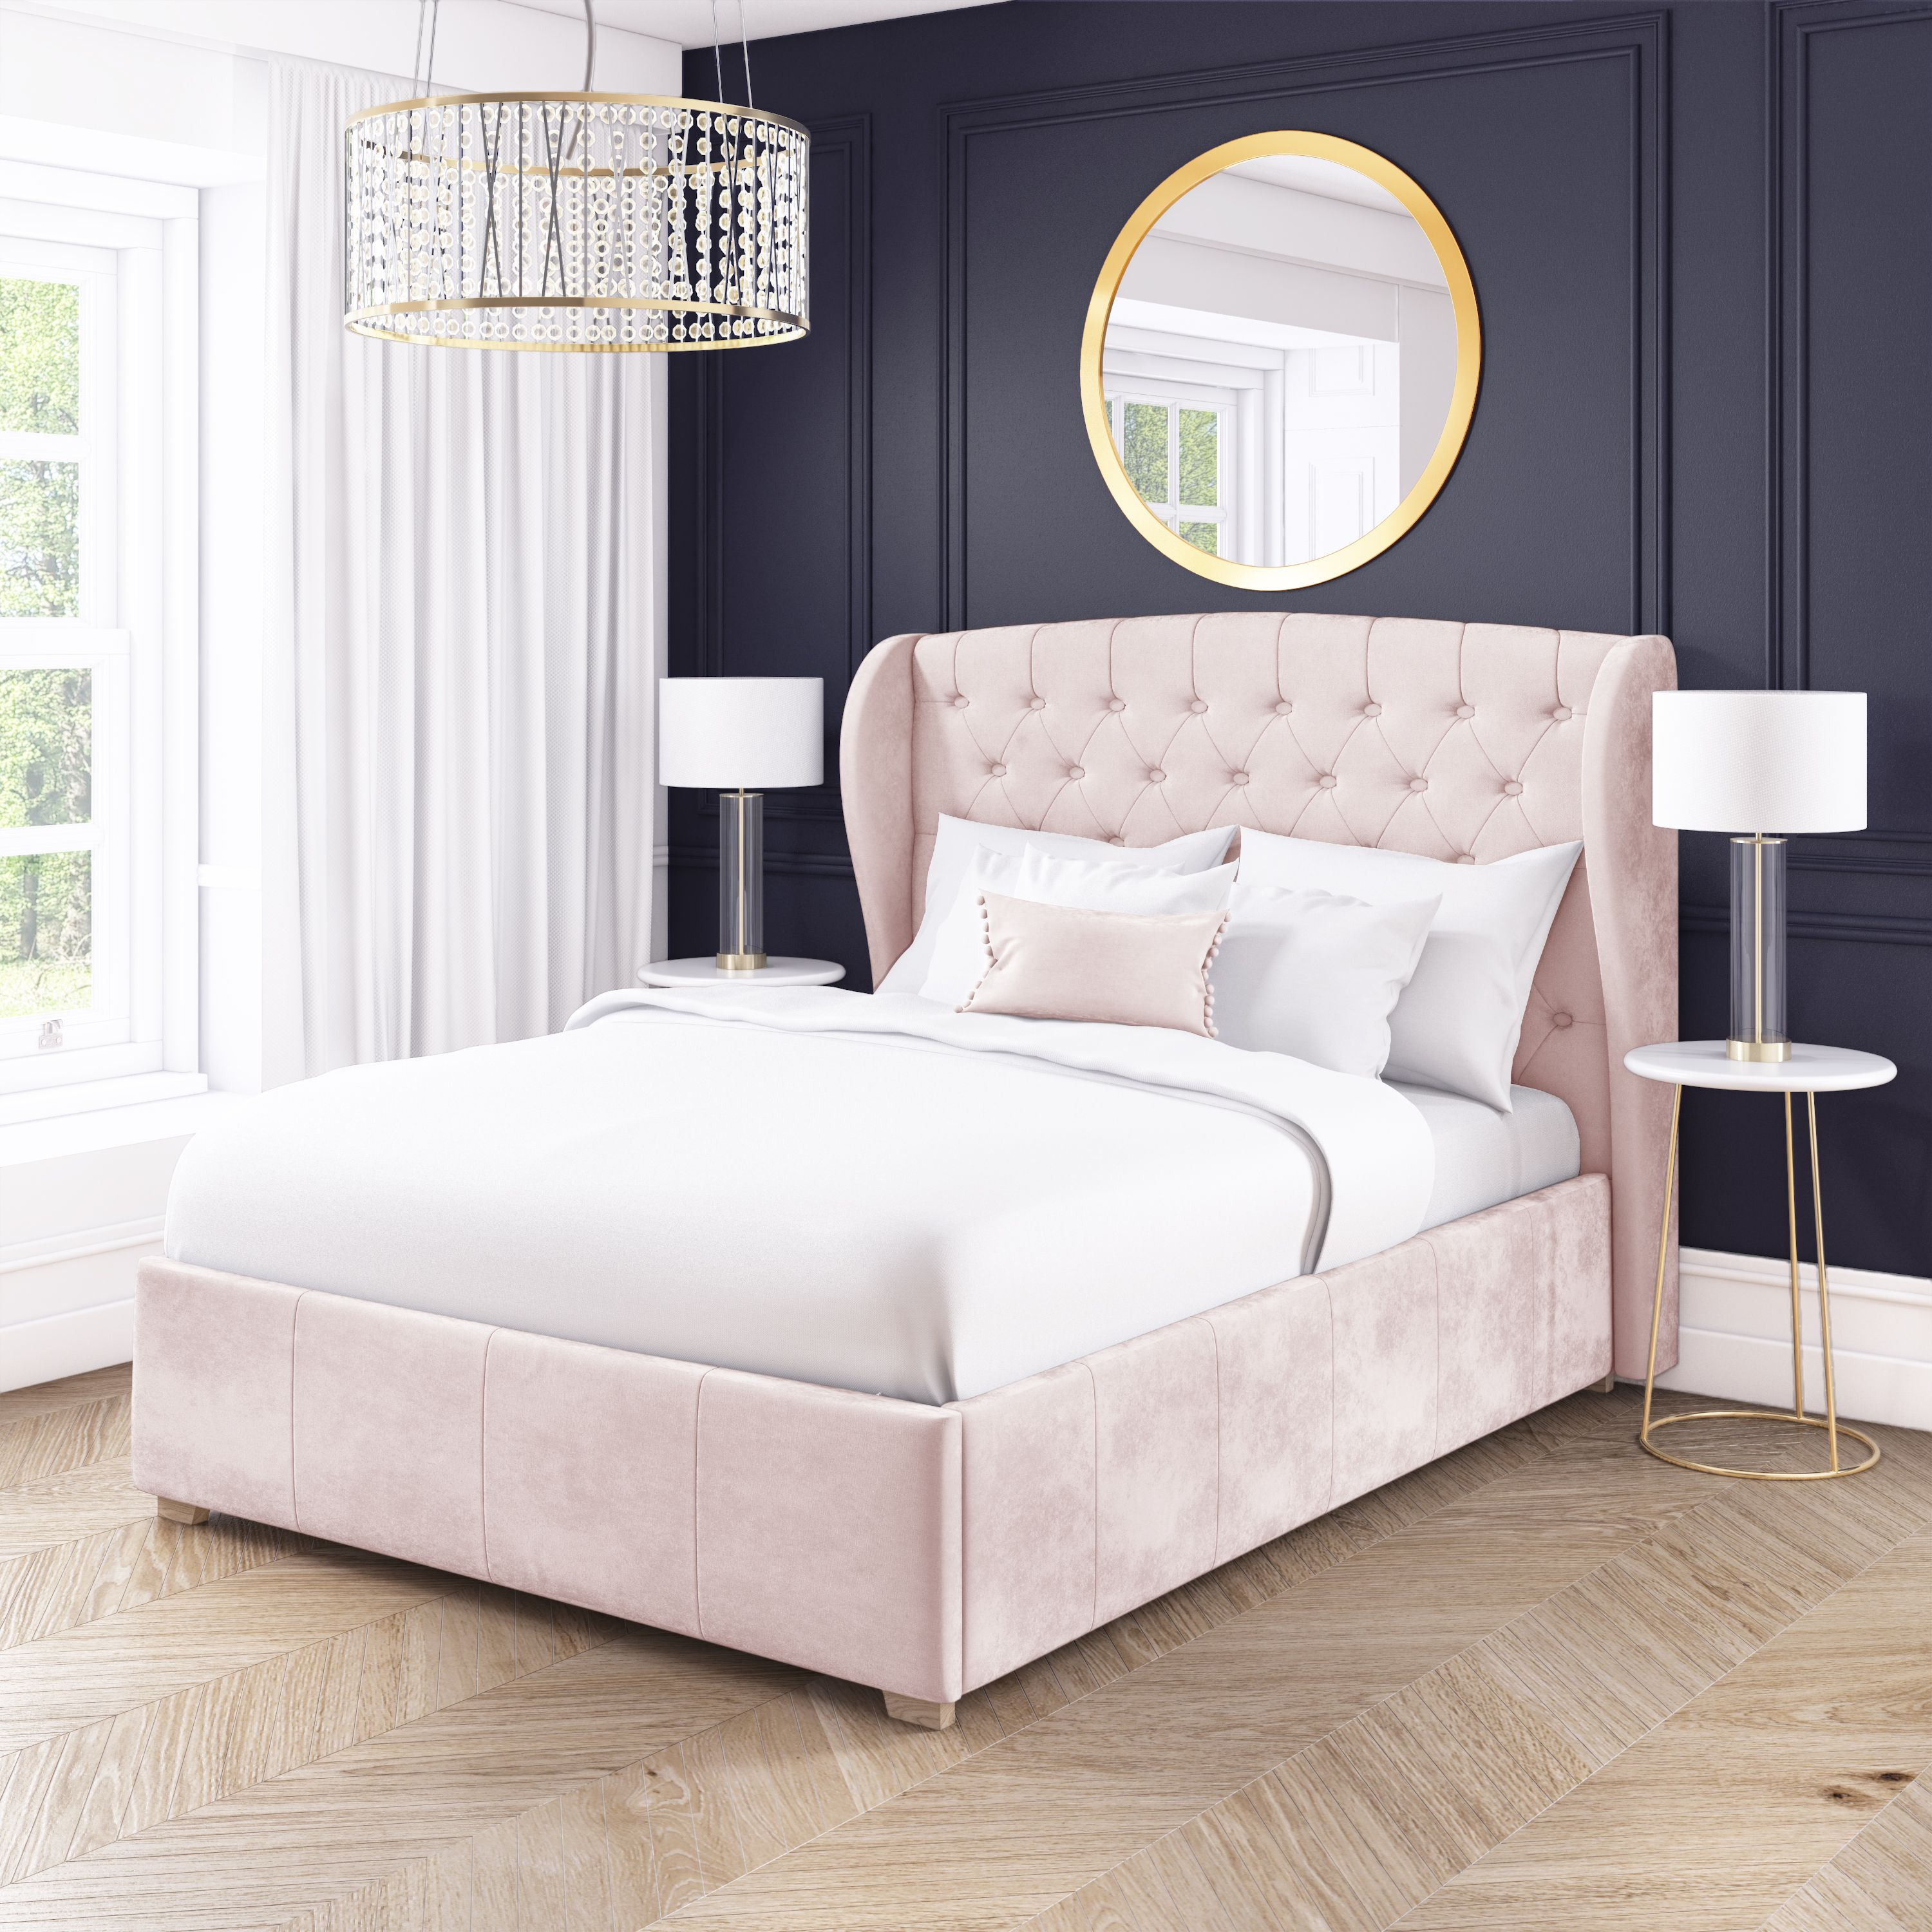 Safina Baby Pink Velvet Ottoman Bed Frame With Buttoned Headboard